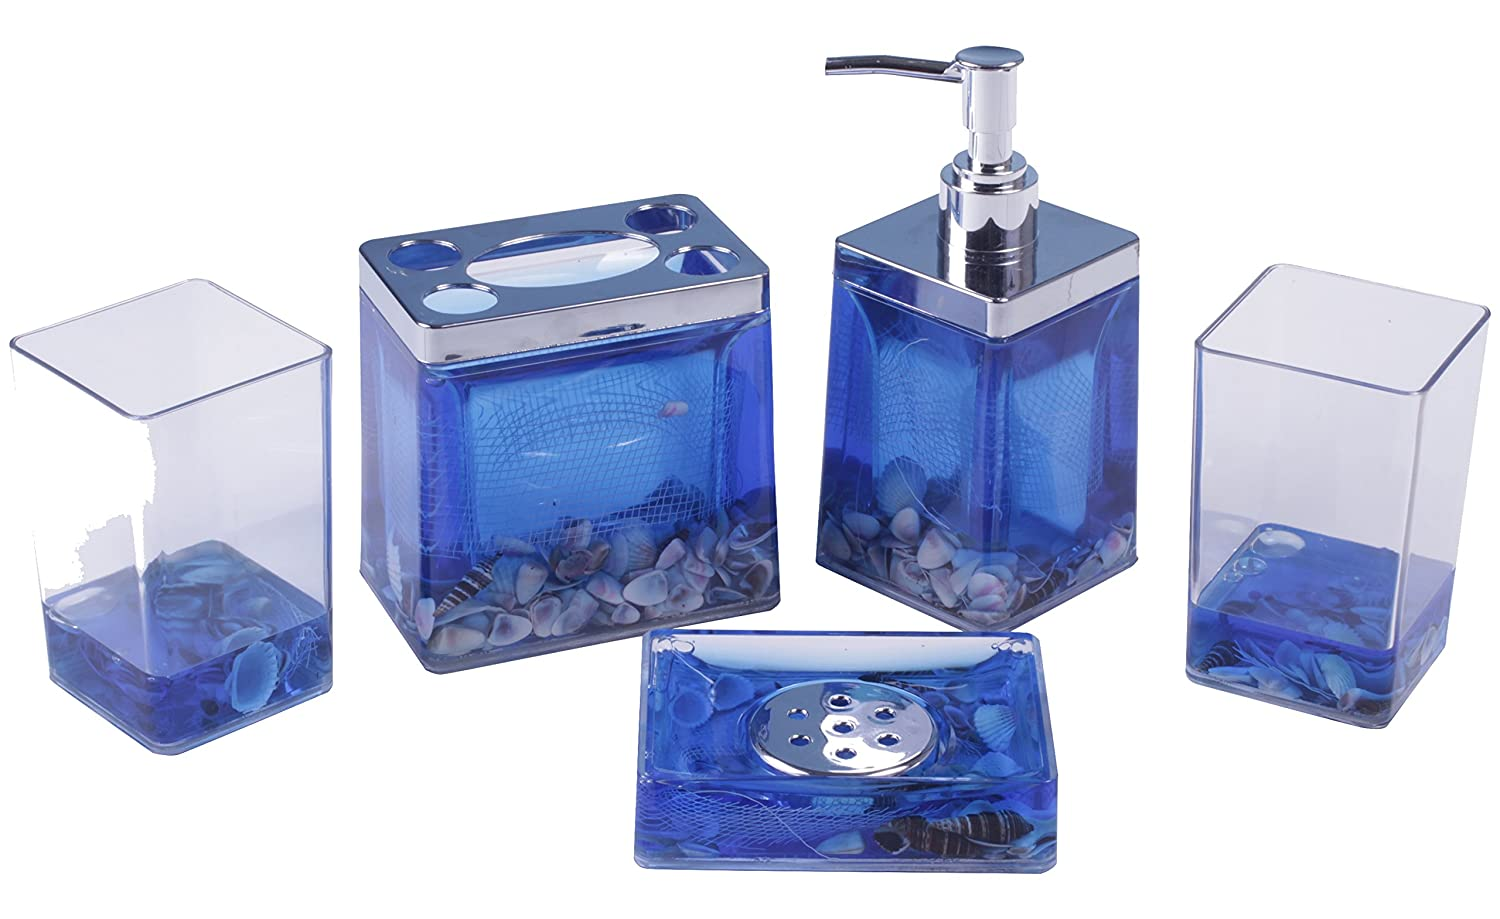 Amazon com  AMC Blue Ocean 5 Piece Bathroom Accessory Set w  Seashells  Home  amp  Kitchen. Amazon com  AMC Blue Ocean 5 Piece Bathroom Accessory Set w